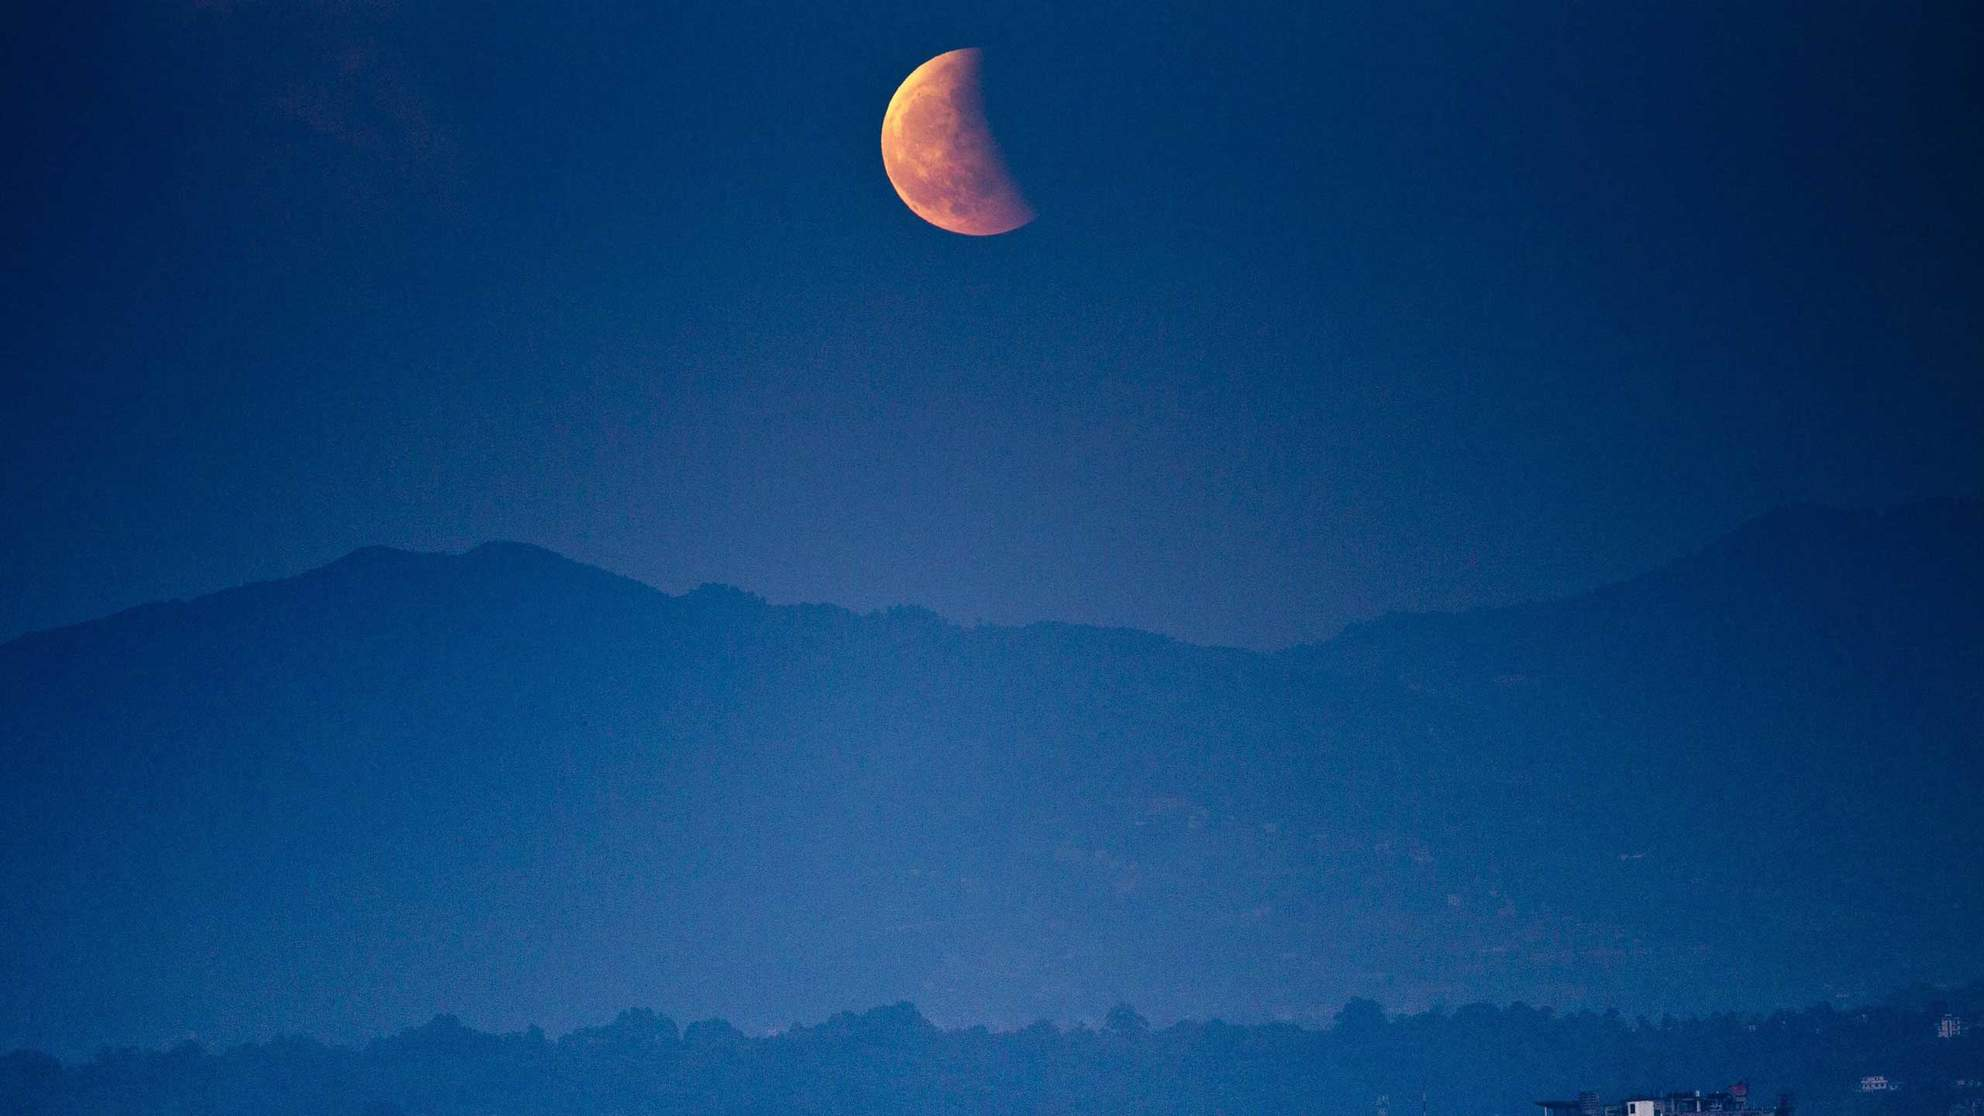 Here's How to Watch the 'Super Blue Blood Moon Eclipse' Next Week